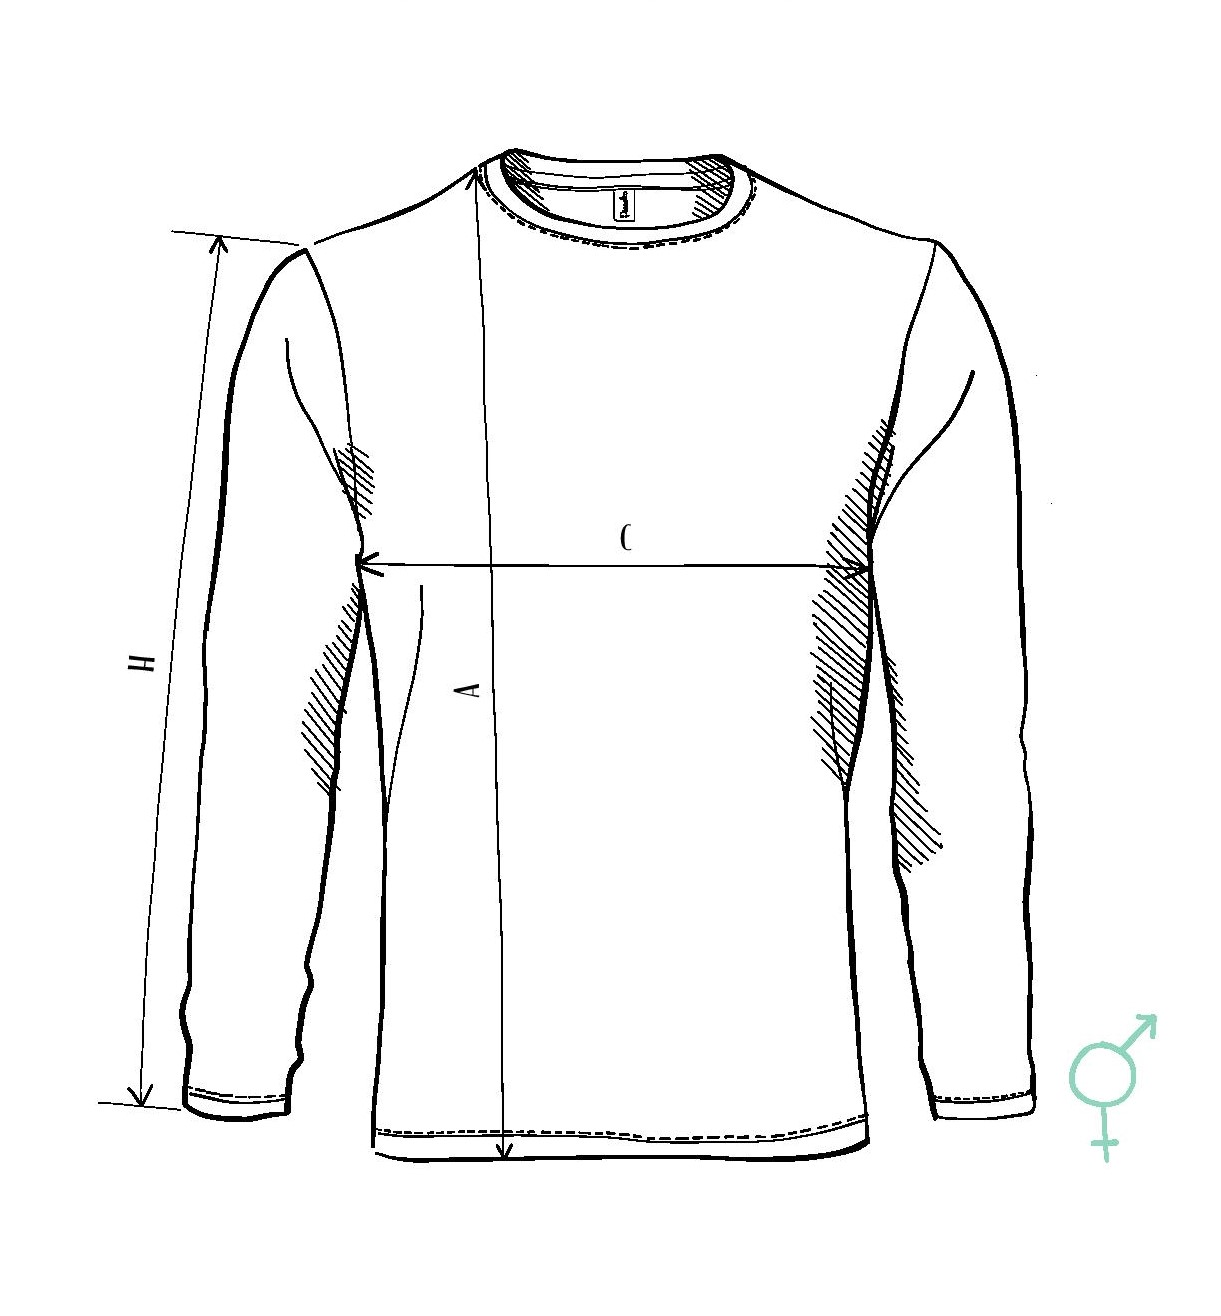 p75---product_size-page-001